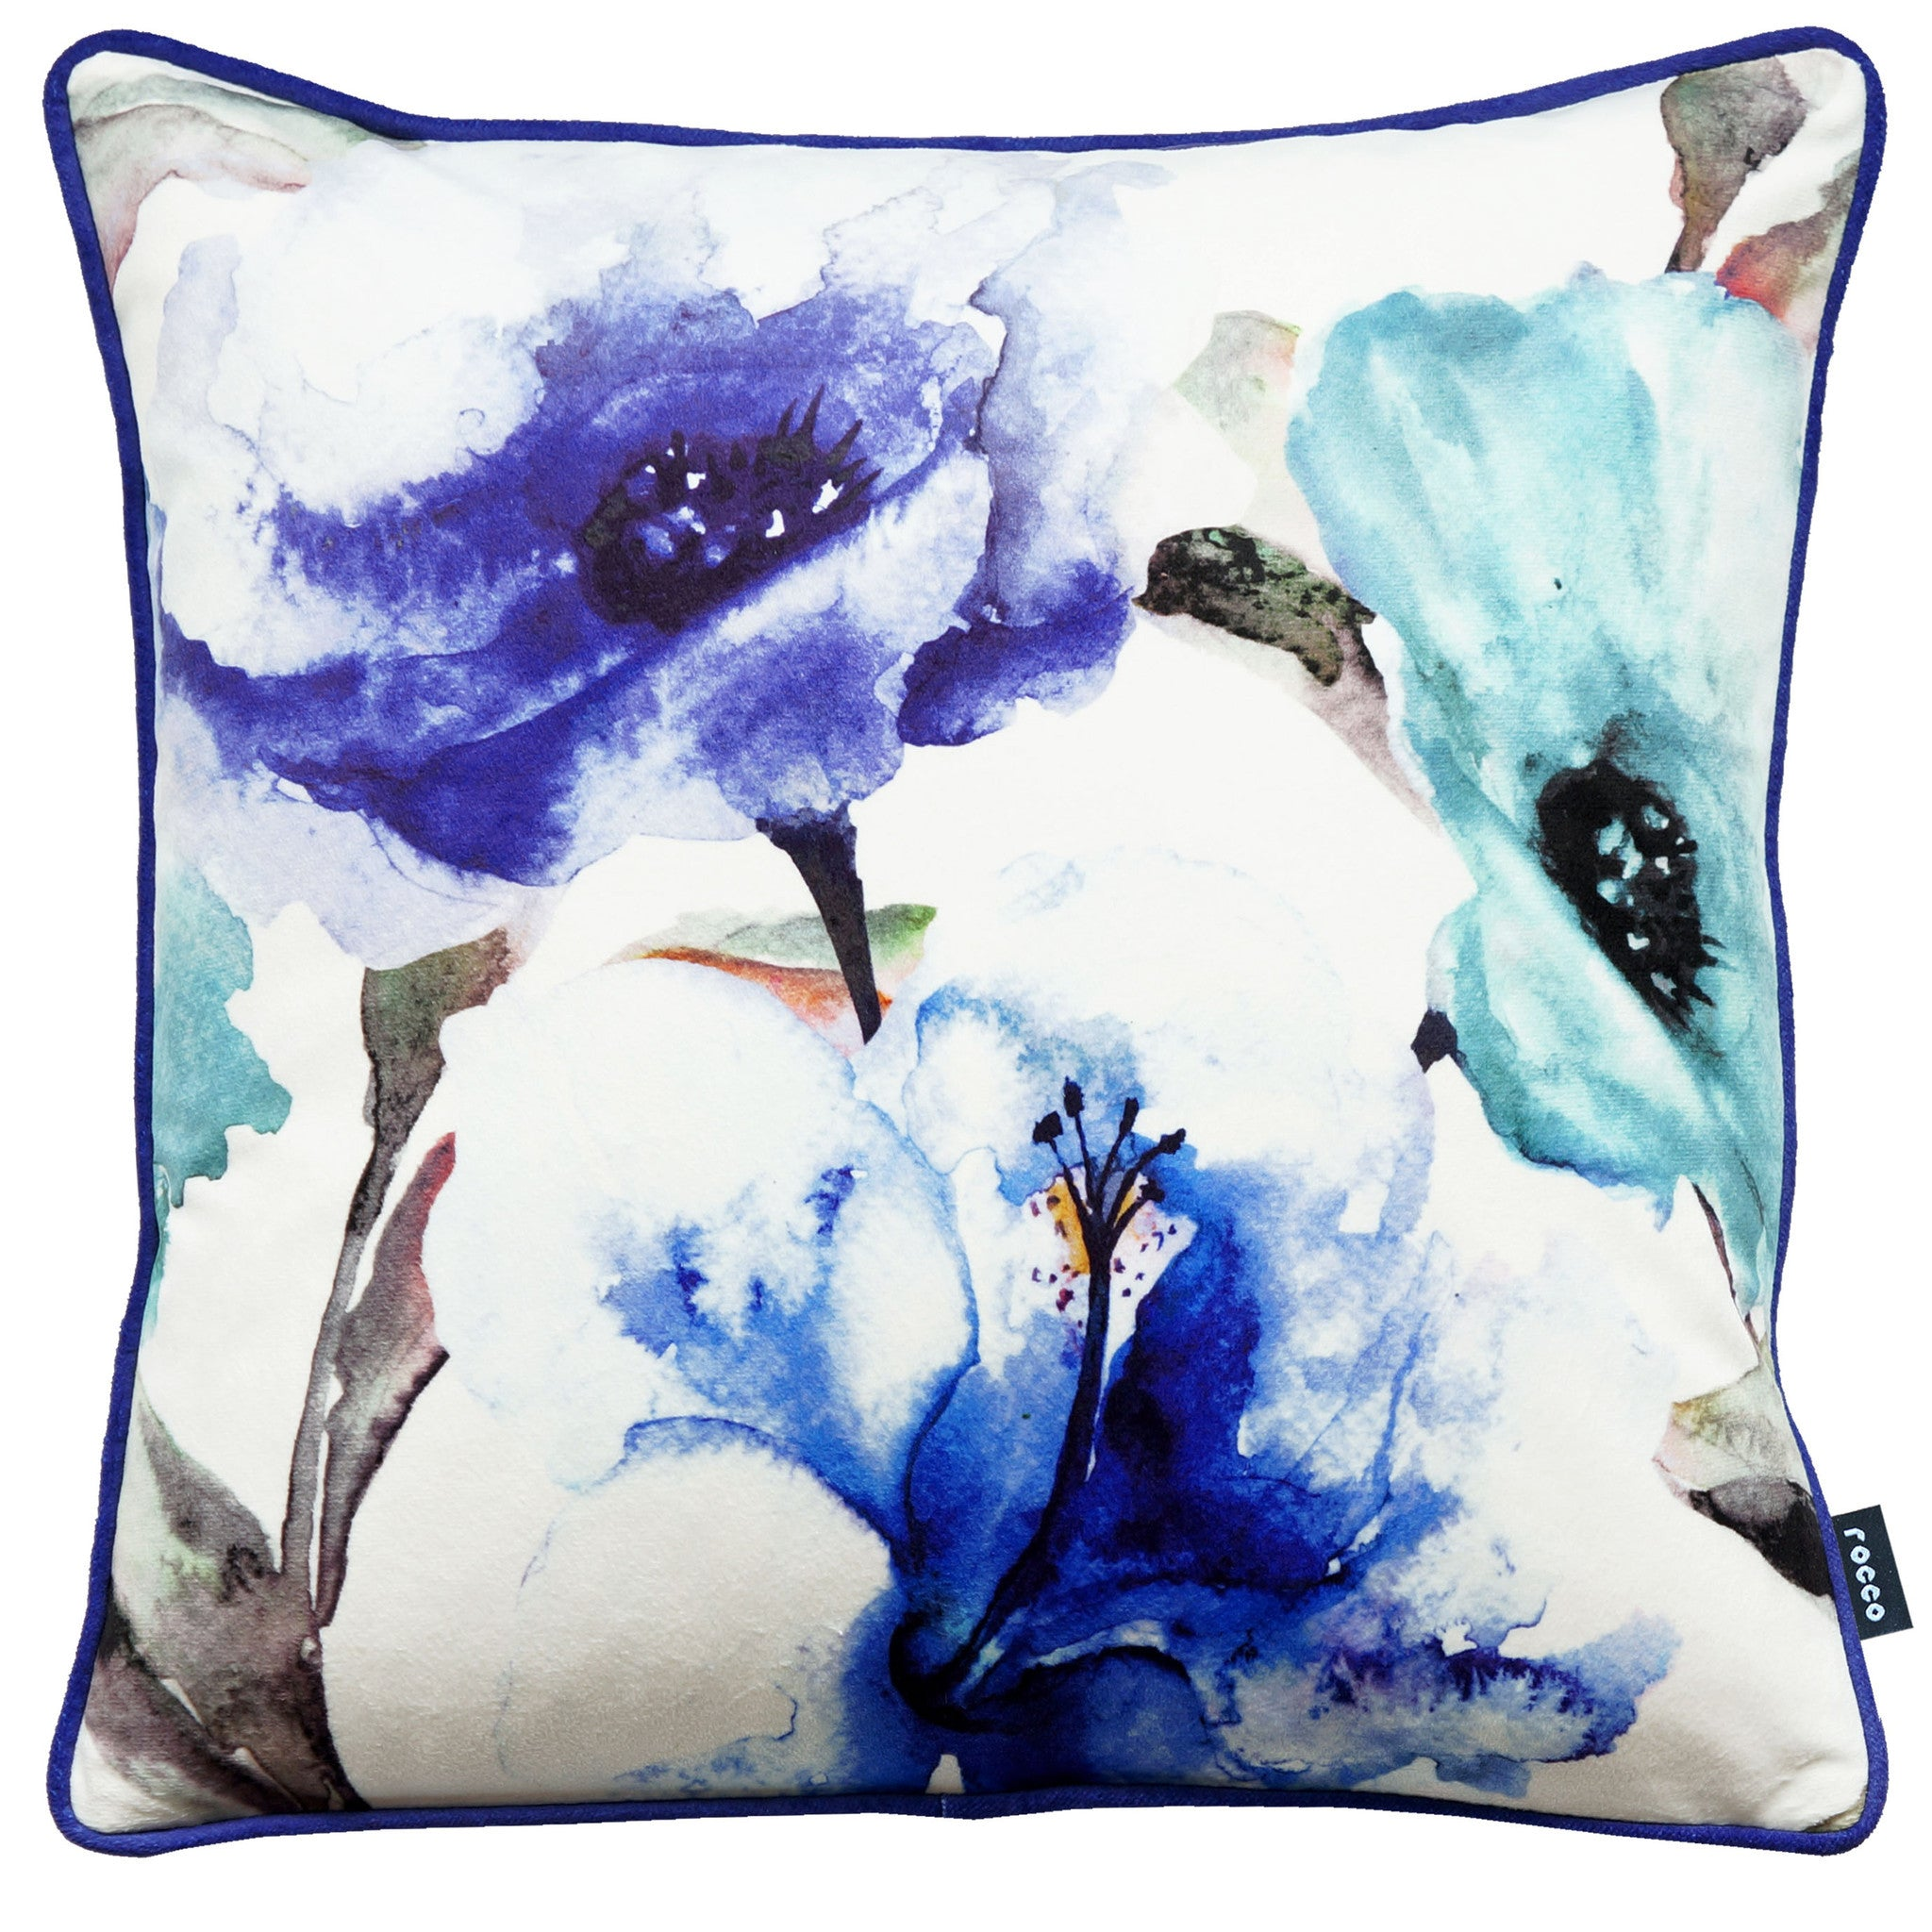 Rocco Flora Blue 43 x 43cm Filled Cushion - Set Of 4